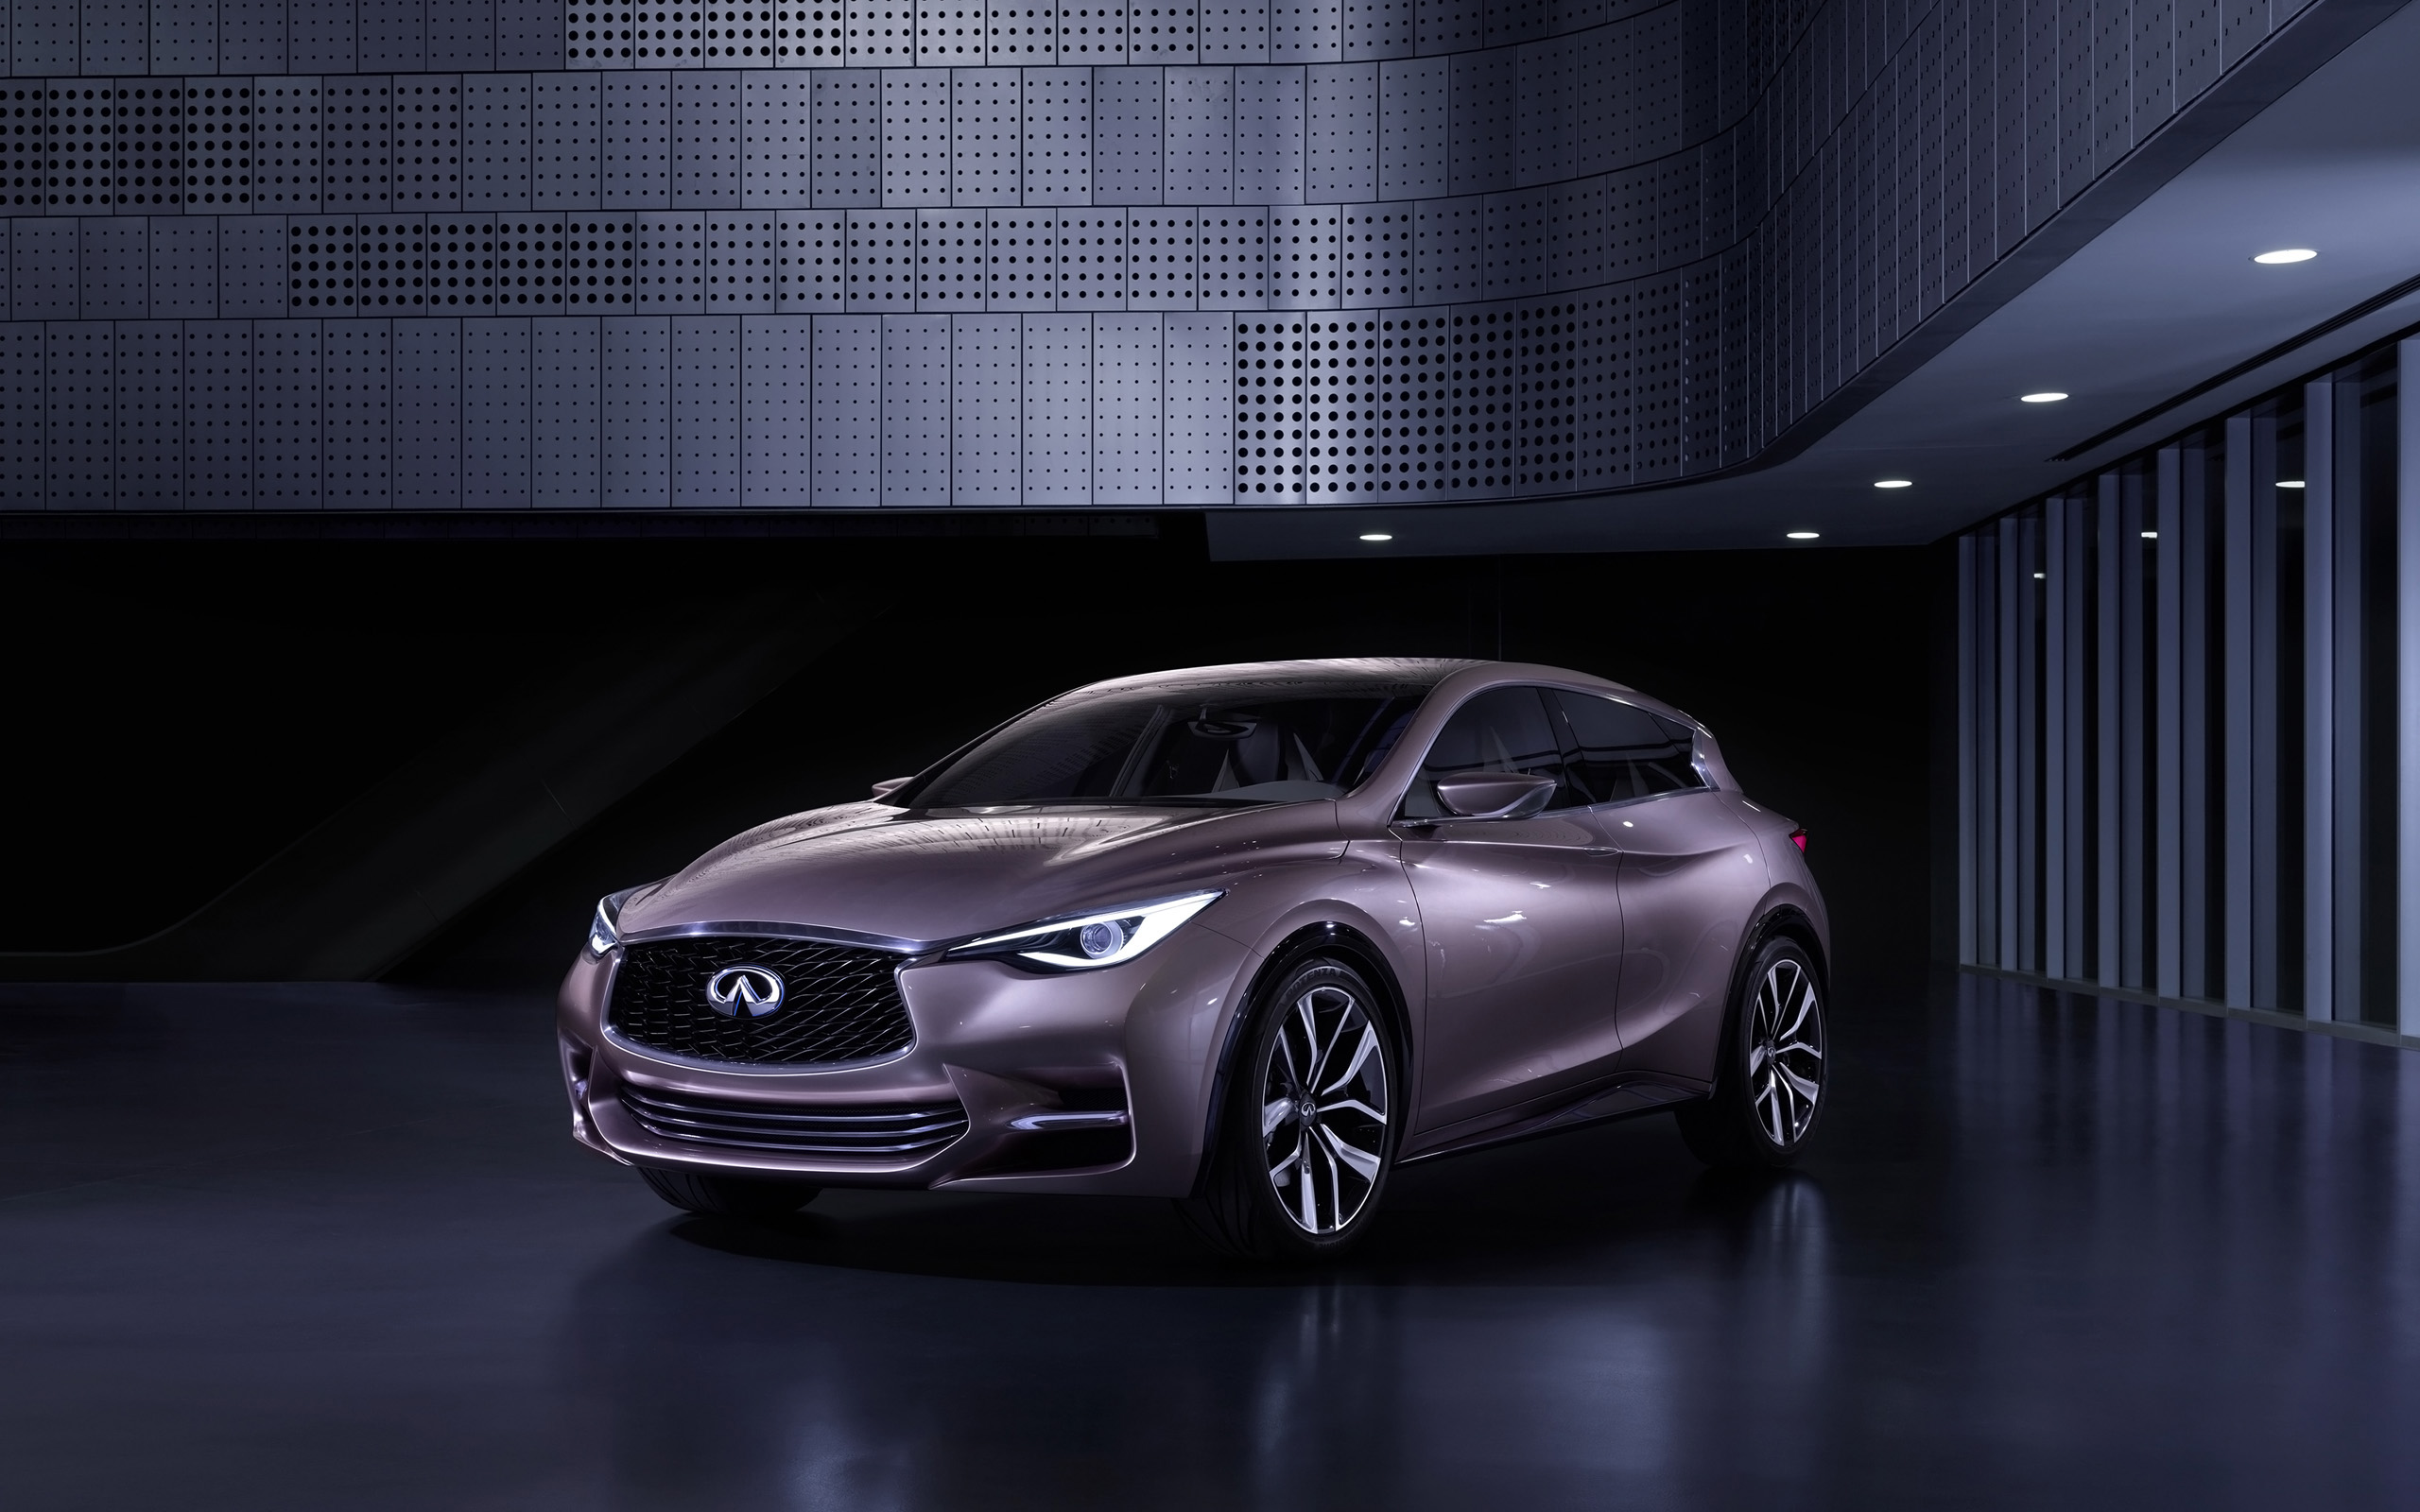 Infiniti Q30 Wallpapers and Background Images   stmednet 2560x1600